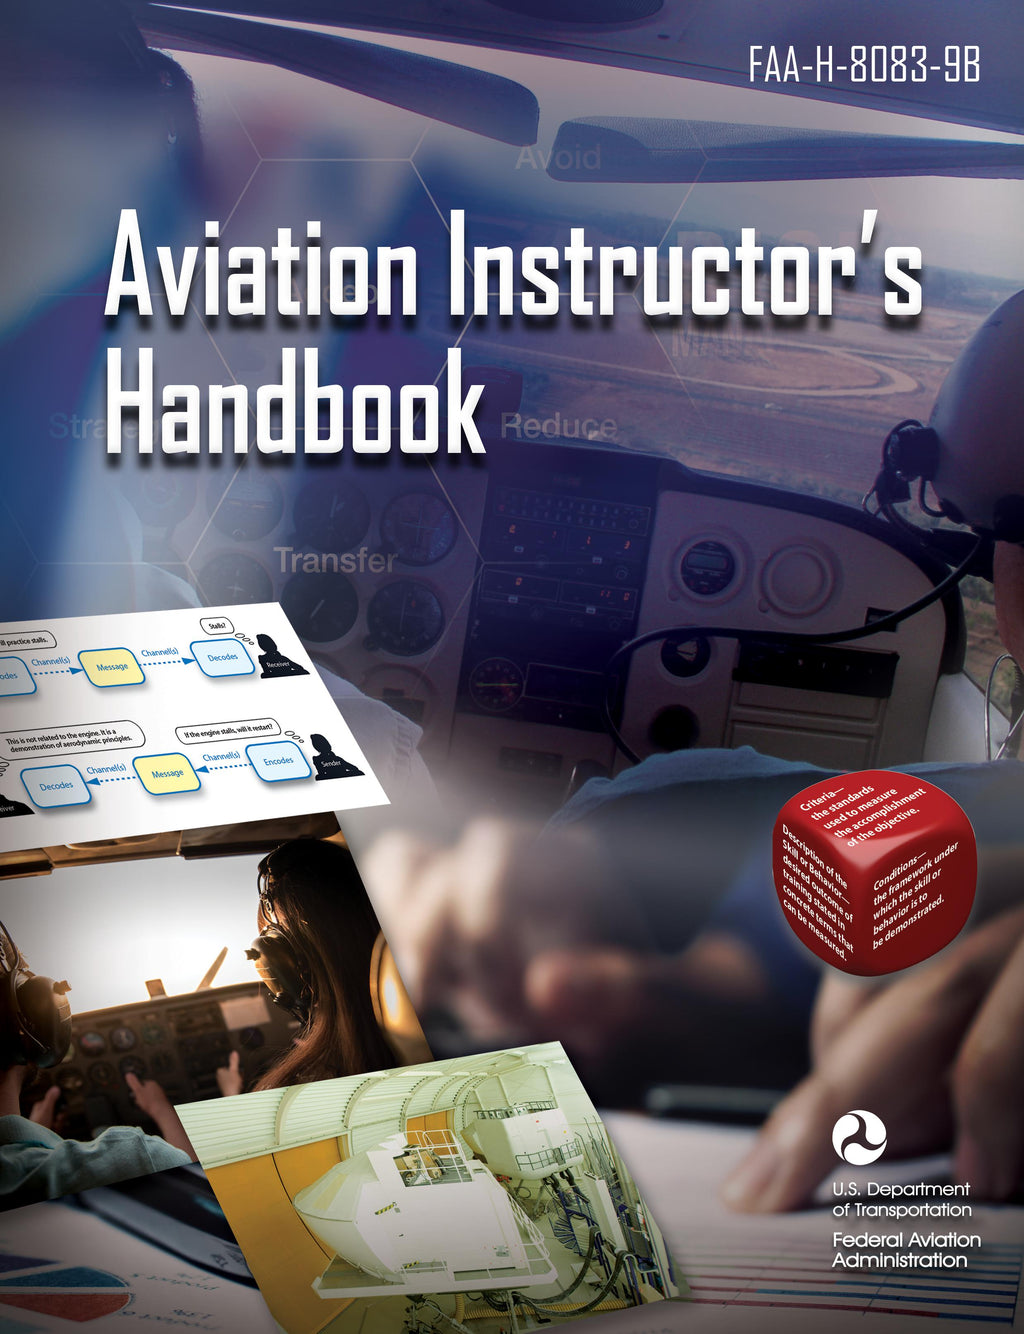 Aviation Instructor's Handbook  / Manual del instructor de aviación 8083-9B (eBook PDF) 2020 - Sky Crew PTY